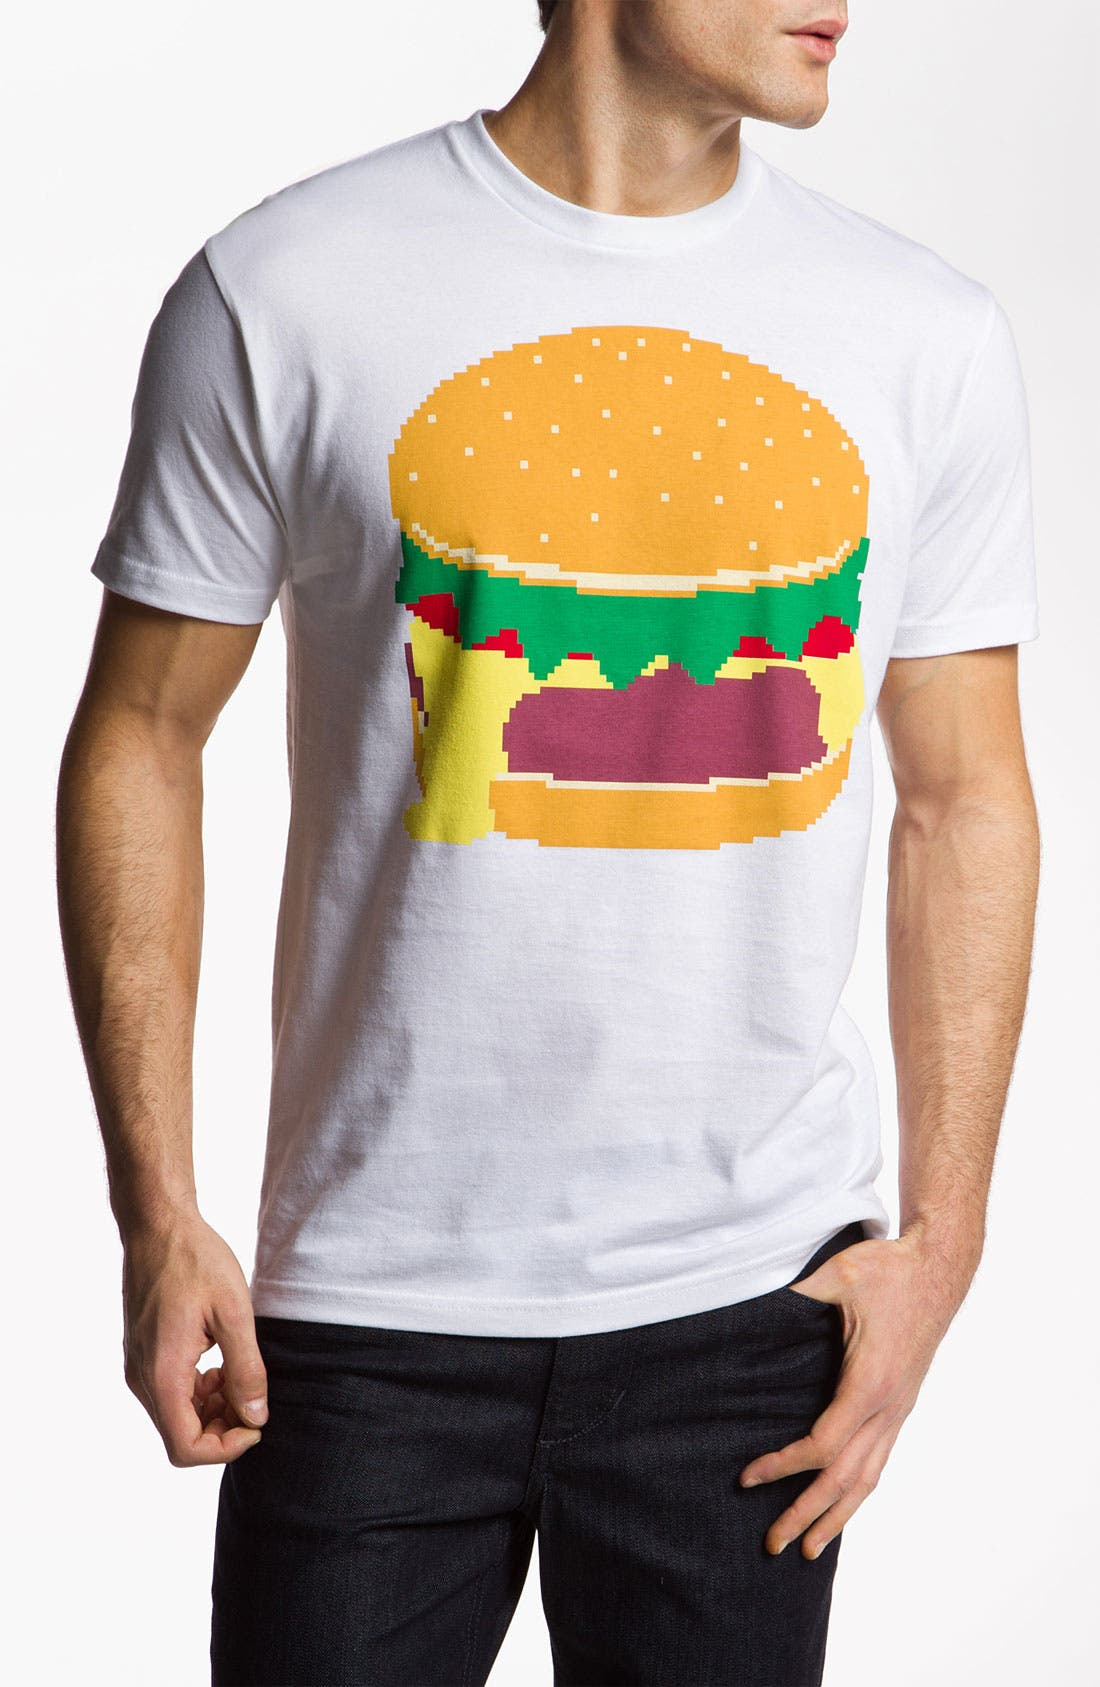 Main Image - Kid Dangerous Grime Couture 'Cheeseburger' Graphic T-Shirt